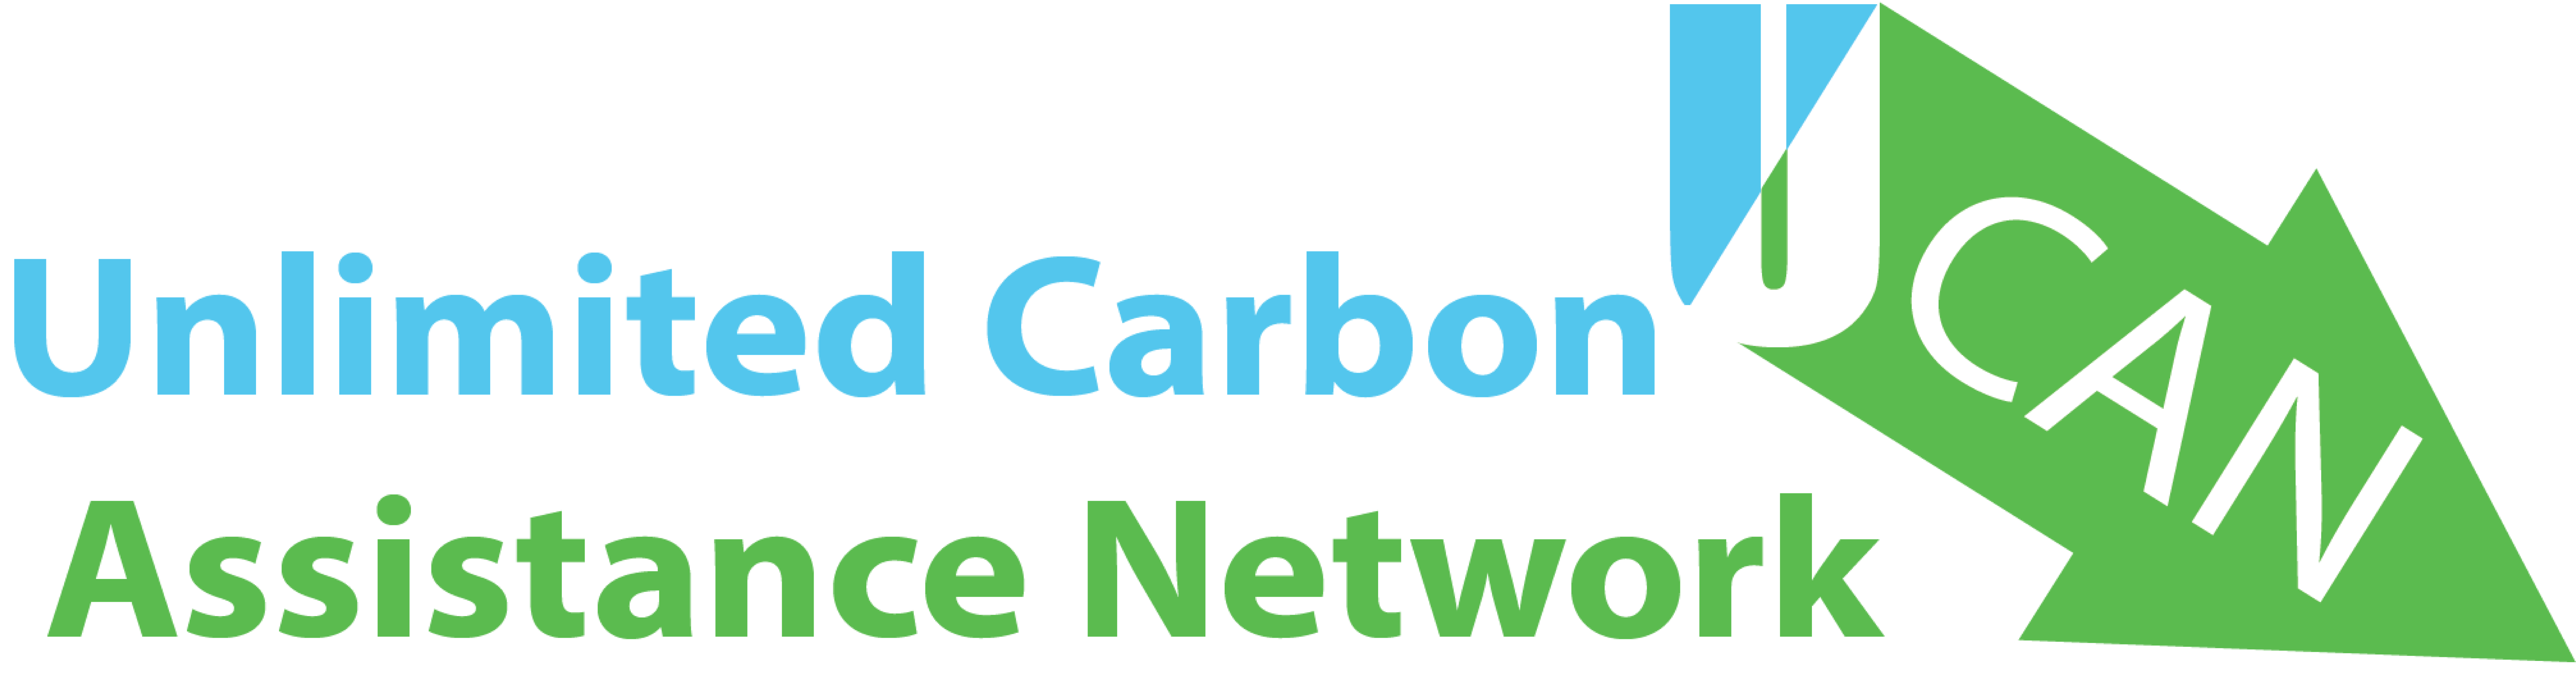 Unlimited Carbon Assistance Network